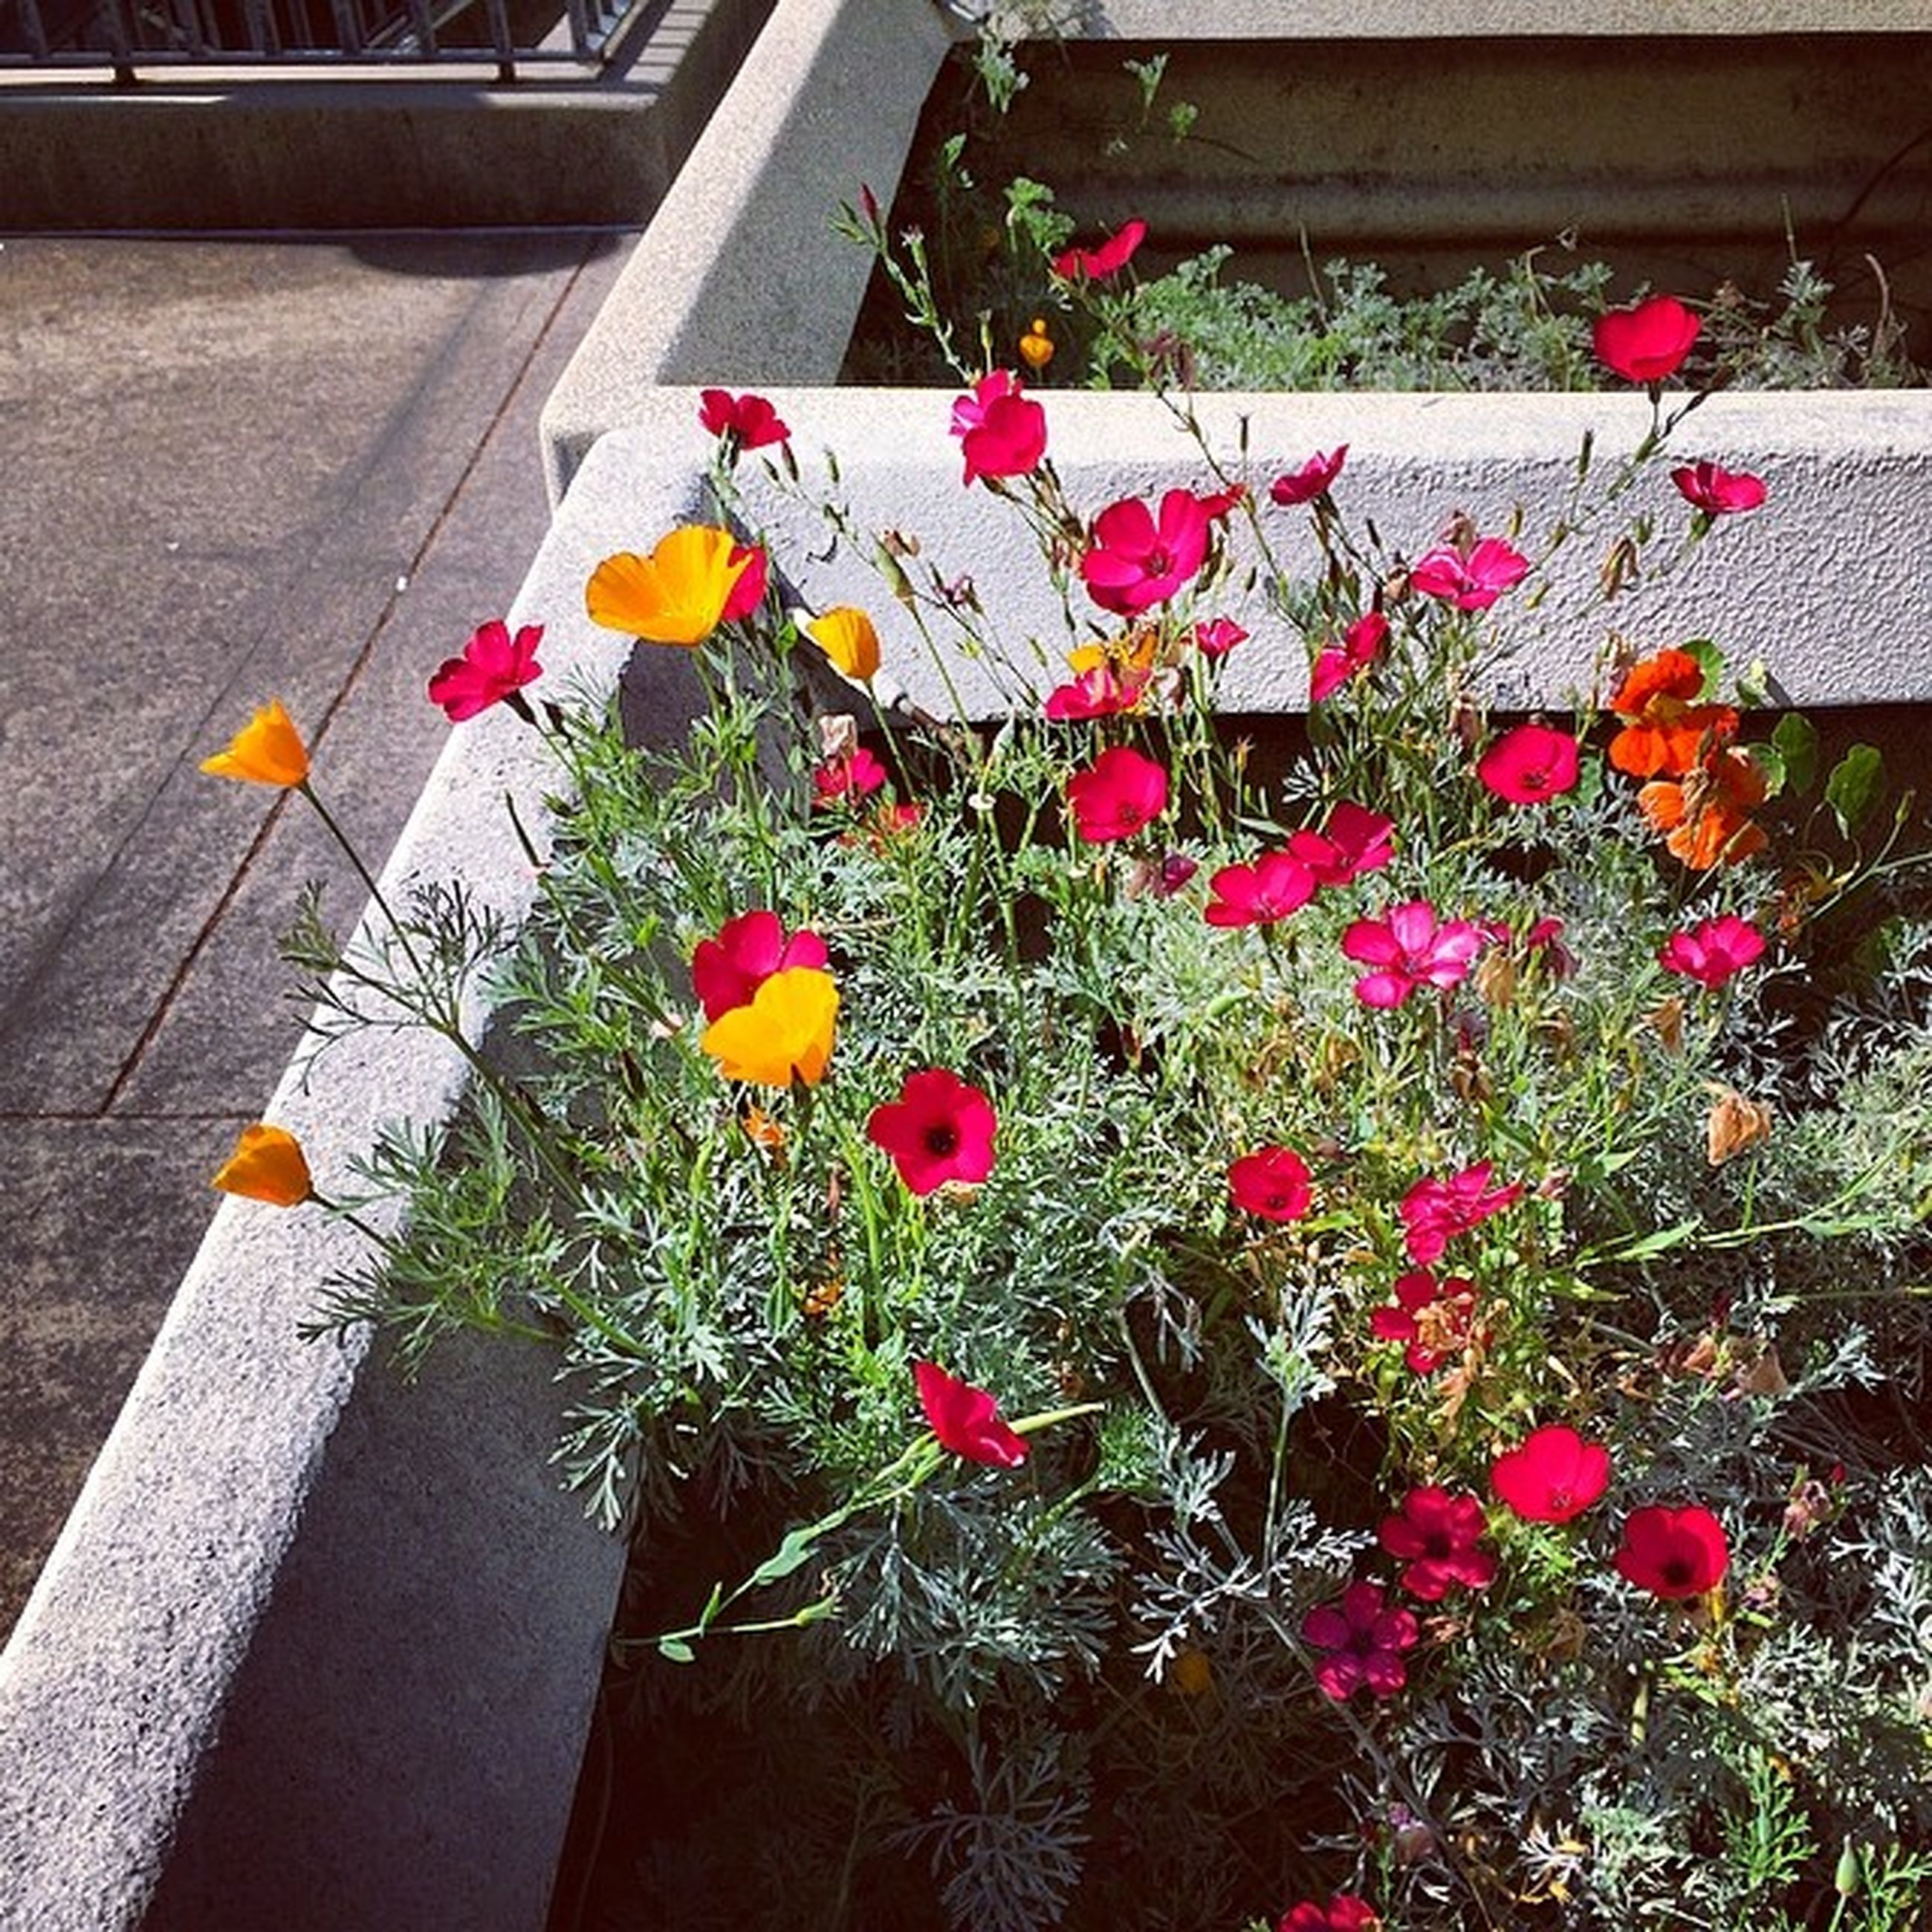 flower, freshness, plant, fragility, petal, growth, red, blooming, high angle view, beauty in nature, flower head, potted plant, nature, in bloom, day, no people, leaf, front or back yard, built structure, outdoors